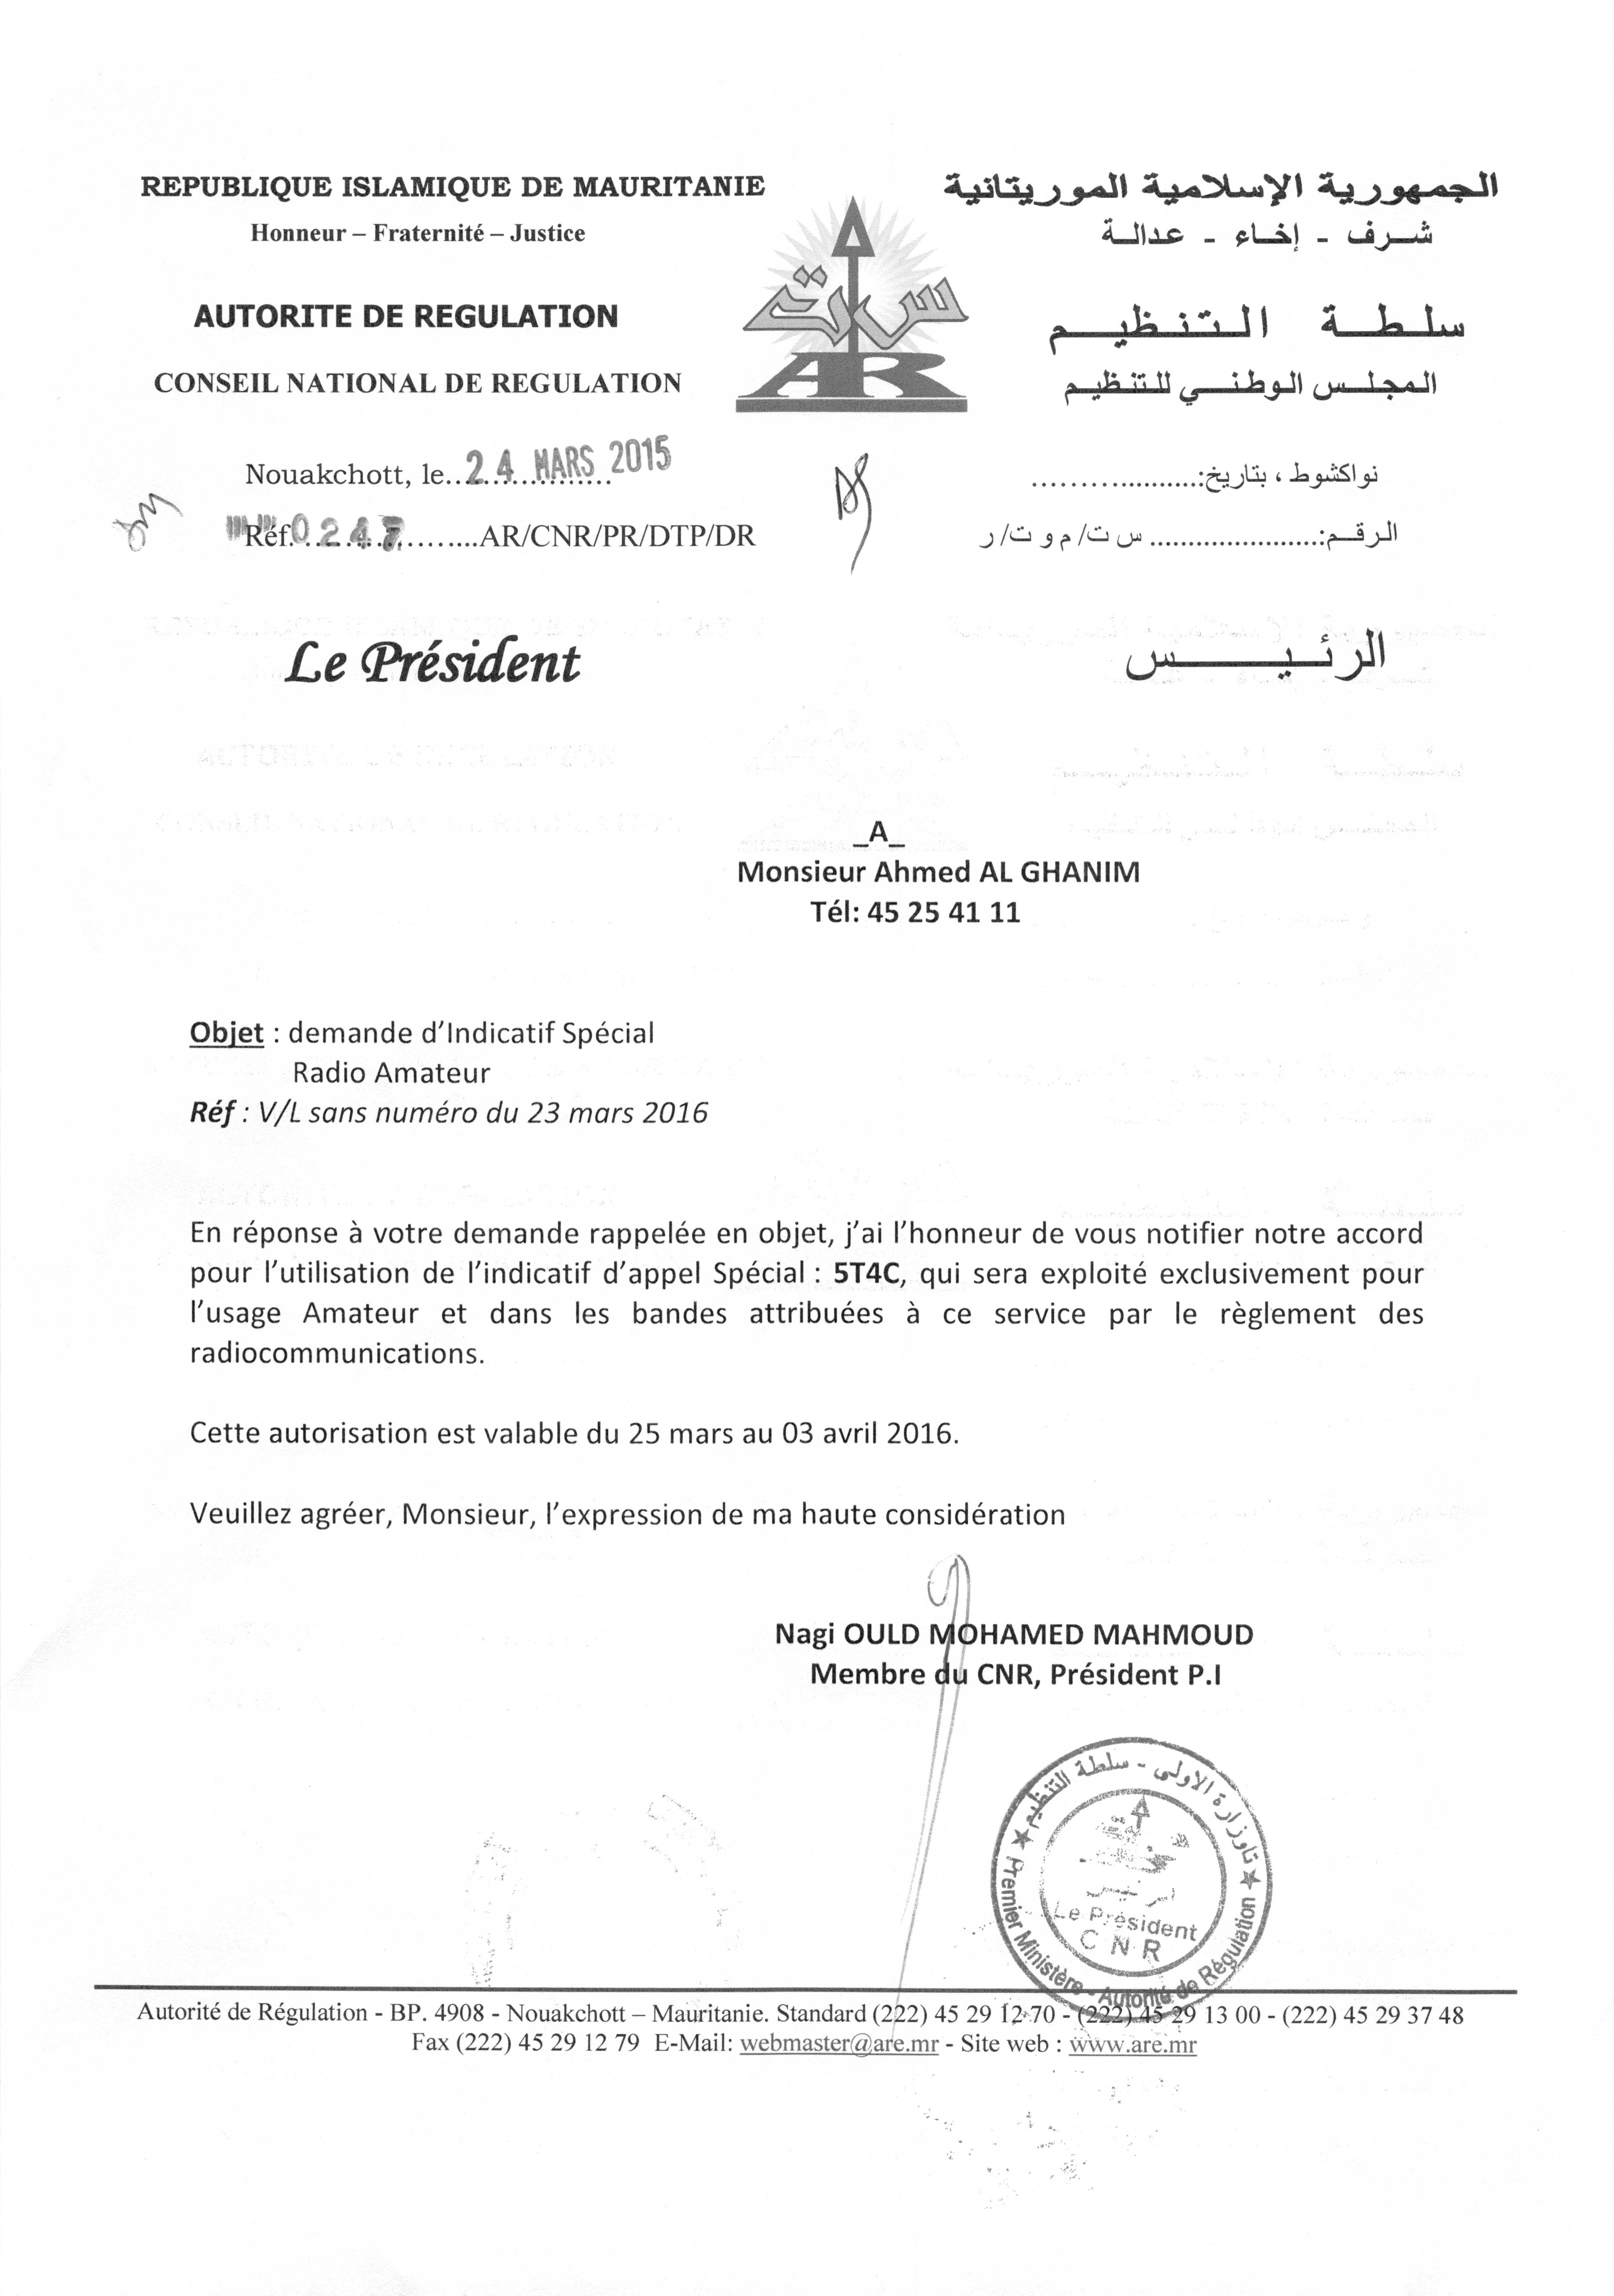 Mauritania 5T4C License